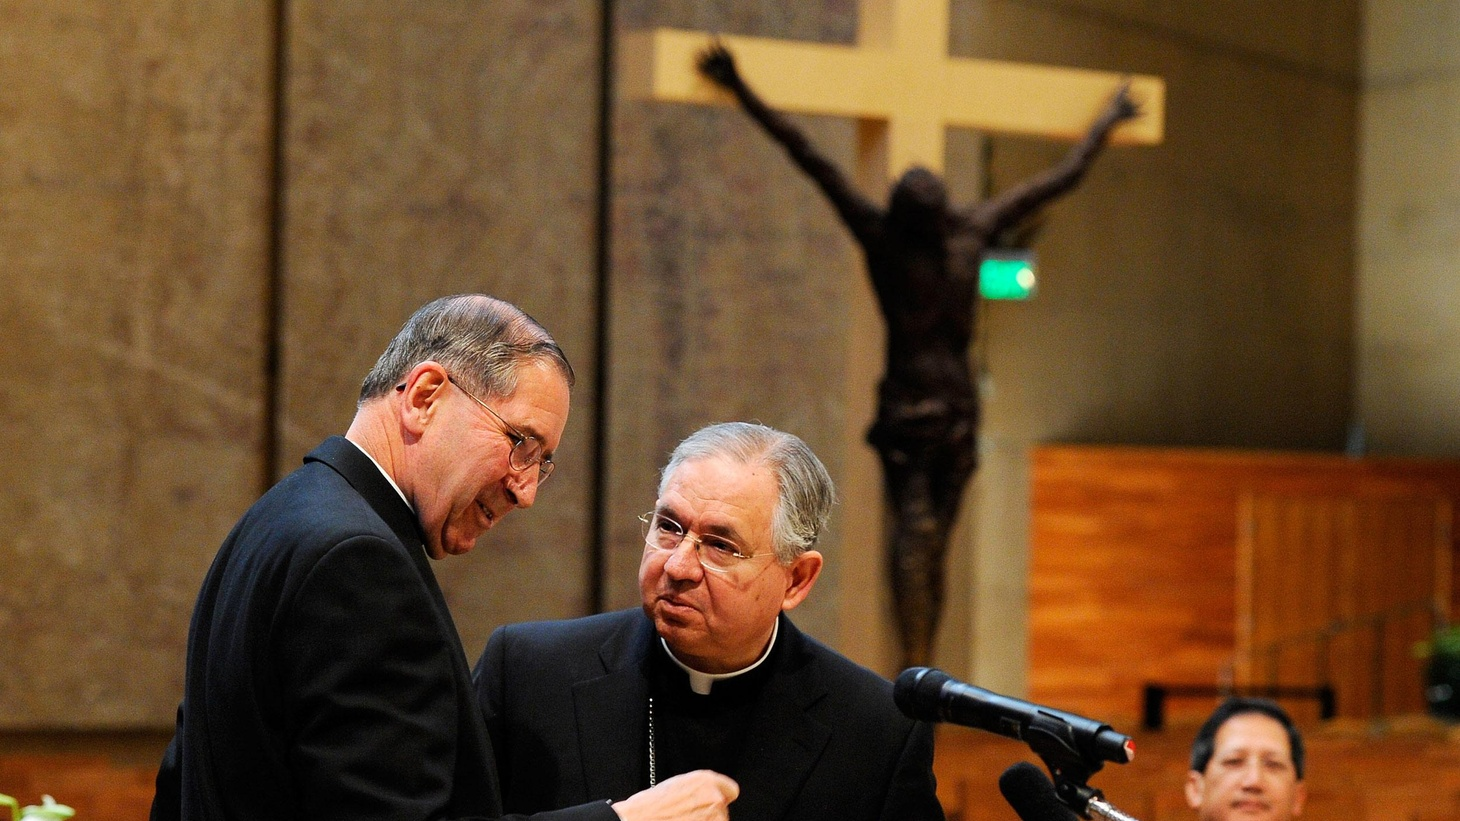 The Roman Catholic Church is an ancient institution in a fast-moving world. After the sex-scandal, what's next in America and Europe? Is the future in Africa, Asia and Latin America? Also, President Obama's nuclear summit, and Poland's democracy on trial.